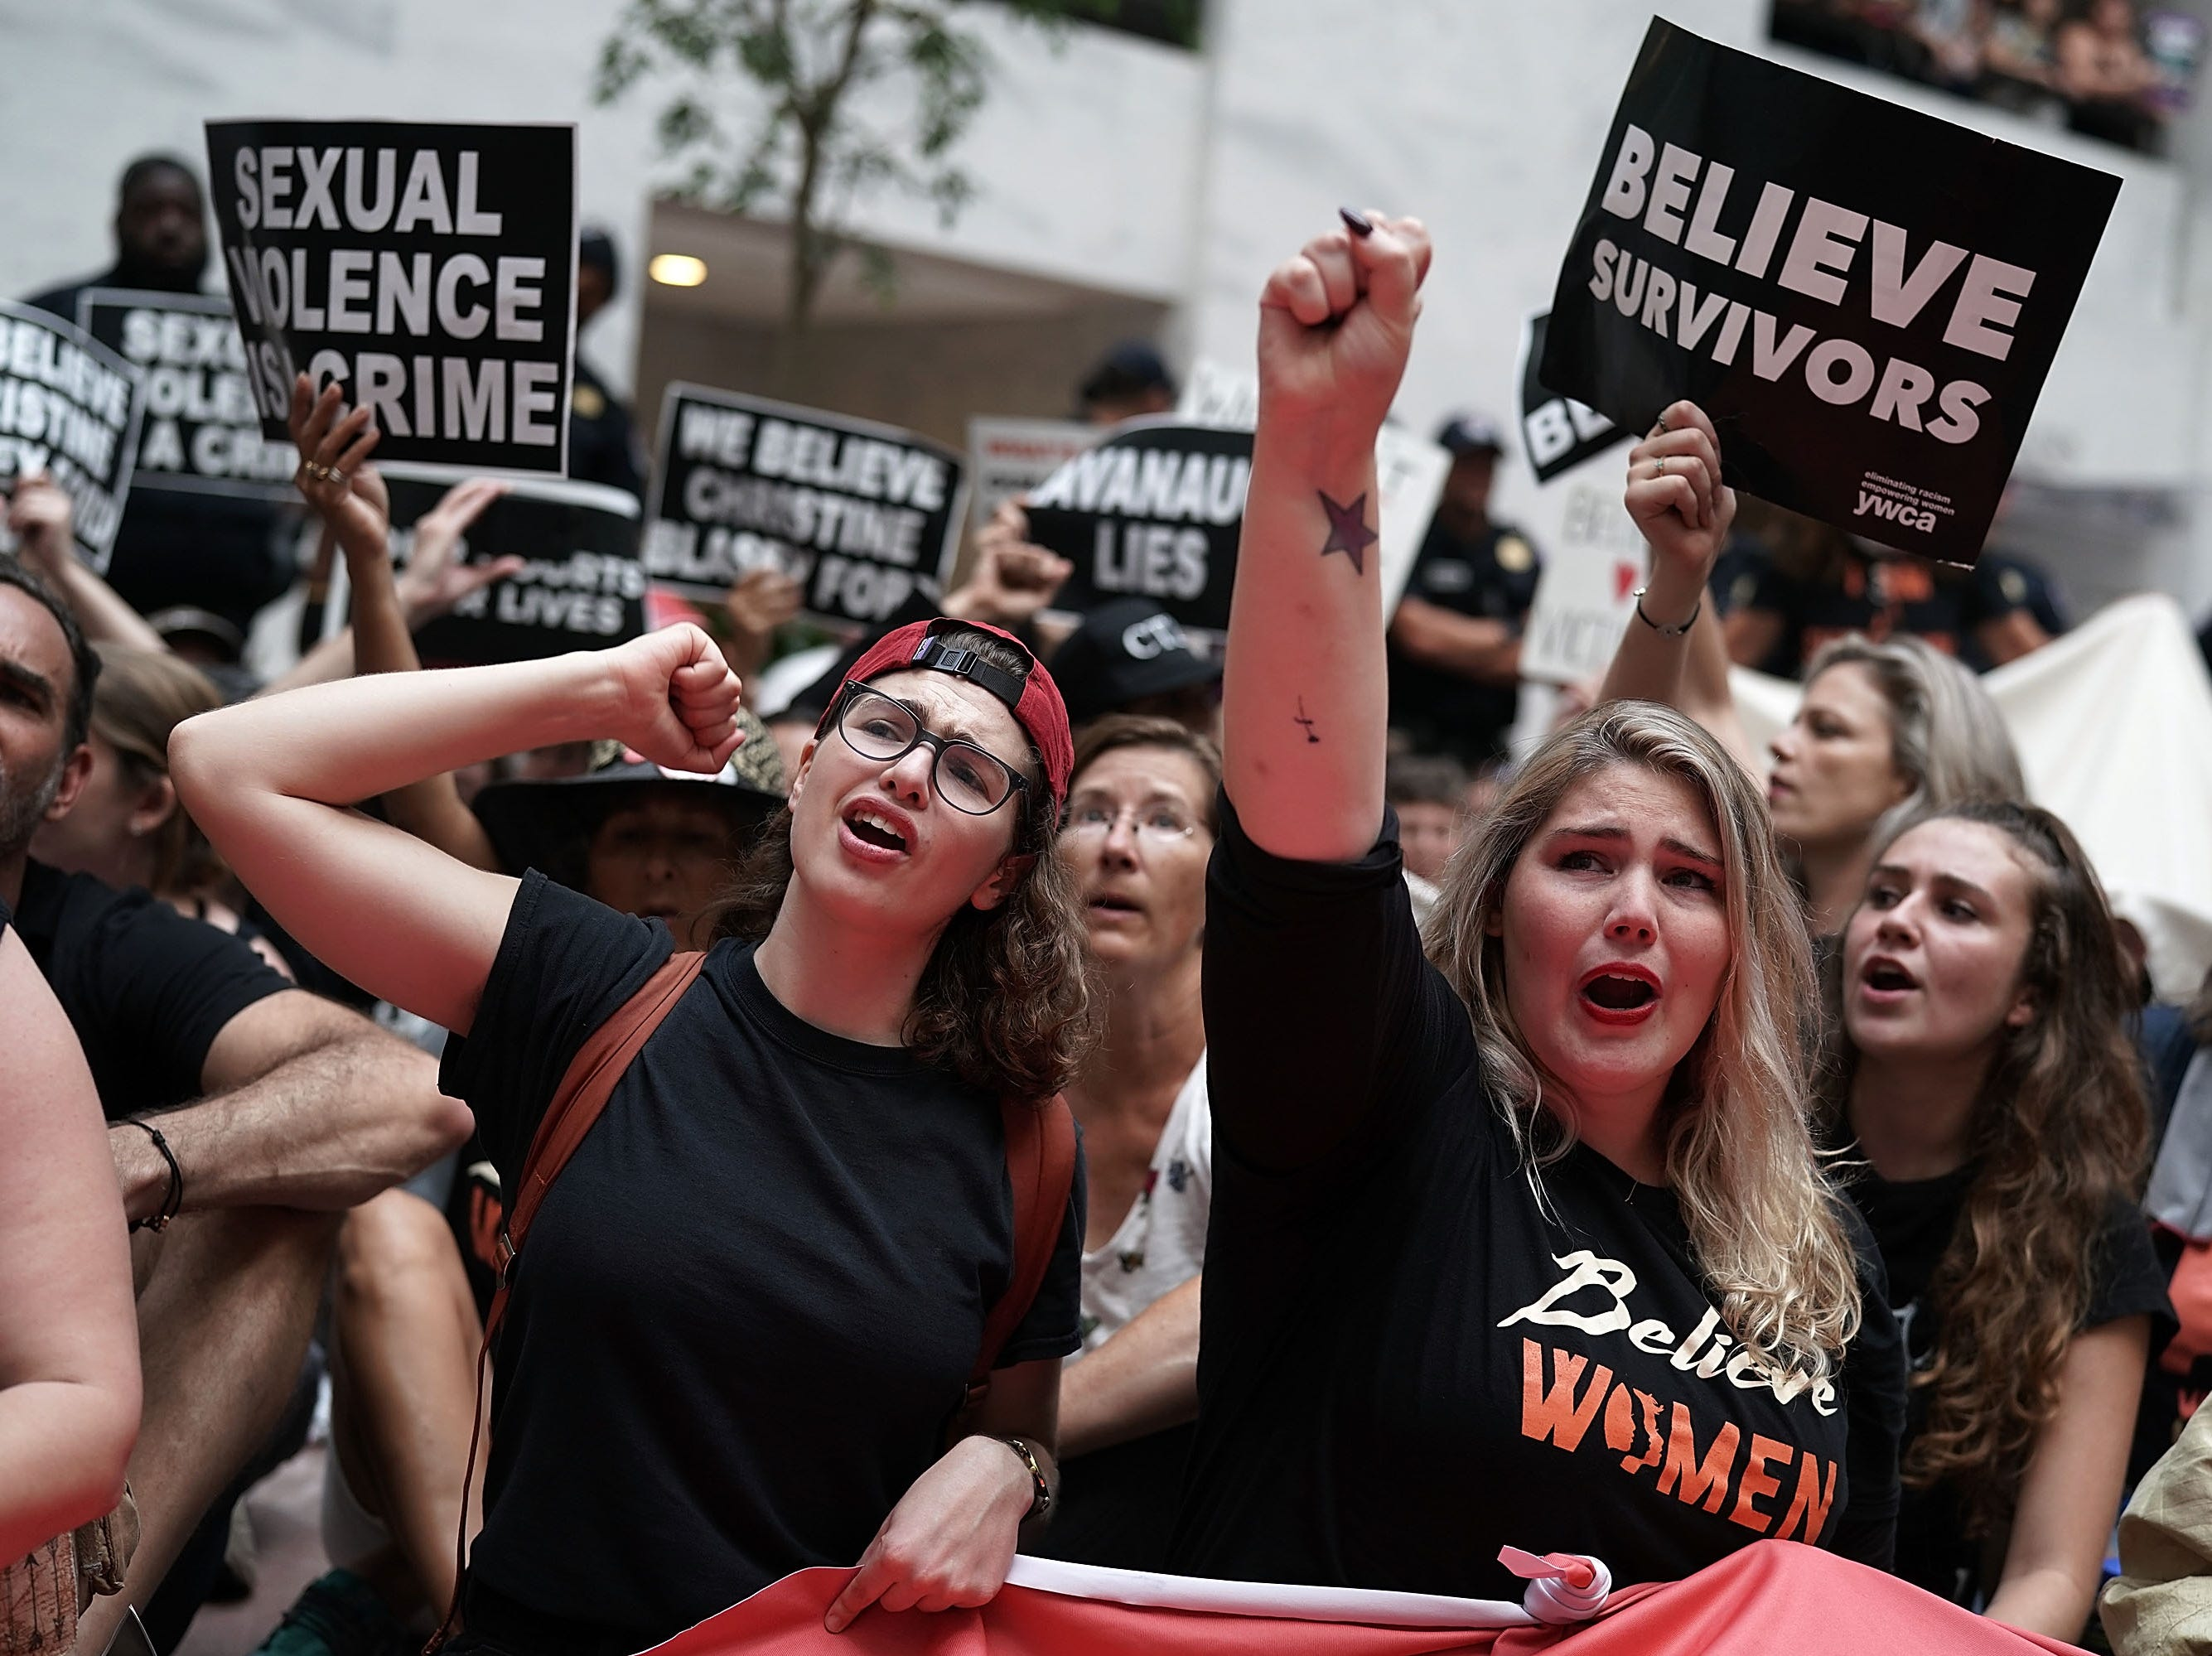 Activists shout slogans during a protest on Oct, 4, 2018 at the Hart Senate Office Building on Capitol Hill in Washington, DC. Activists are rallying in protest against Supreme Court associate justice nominee Brett Kavanaugh.